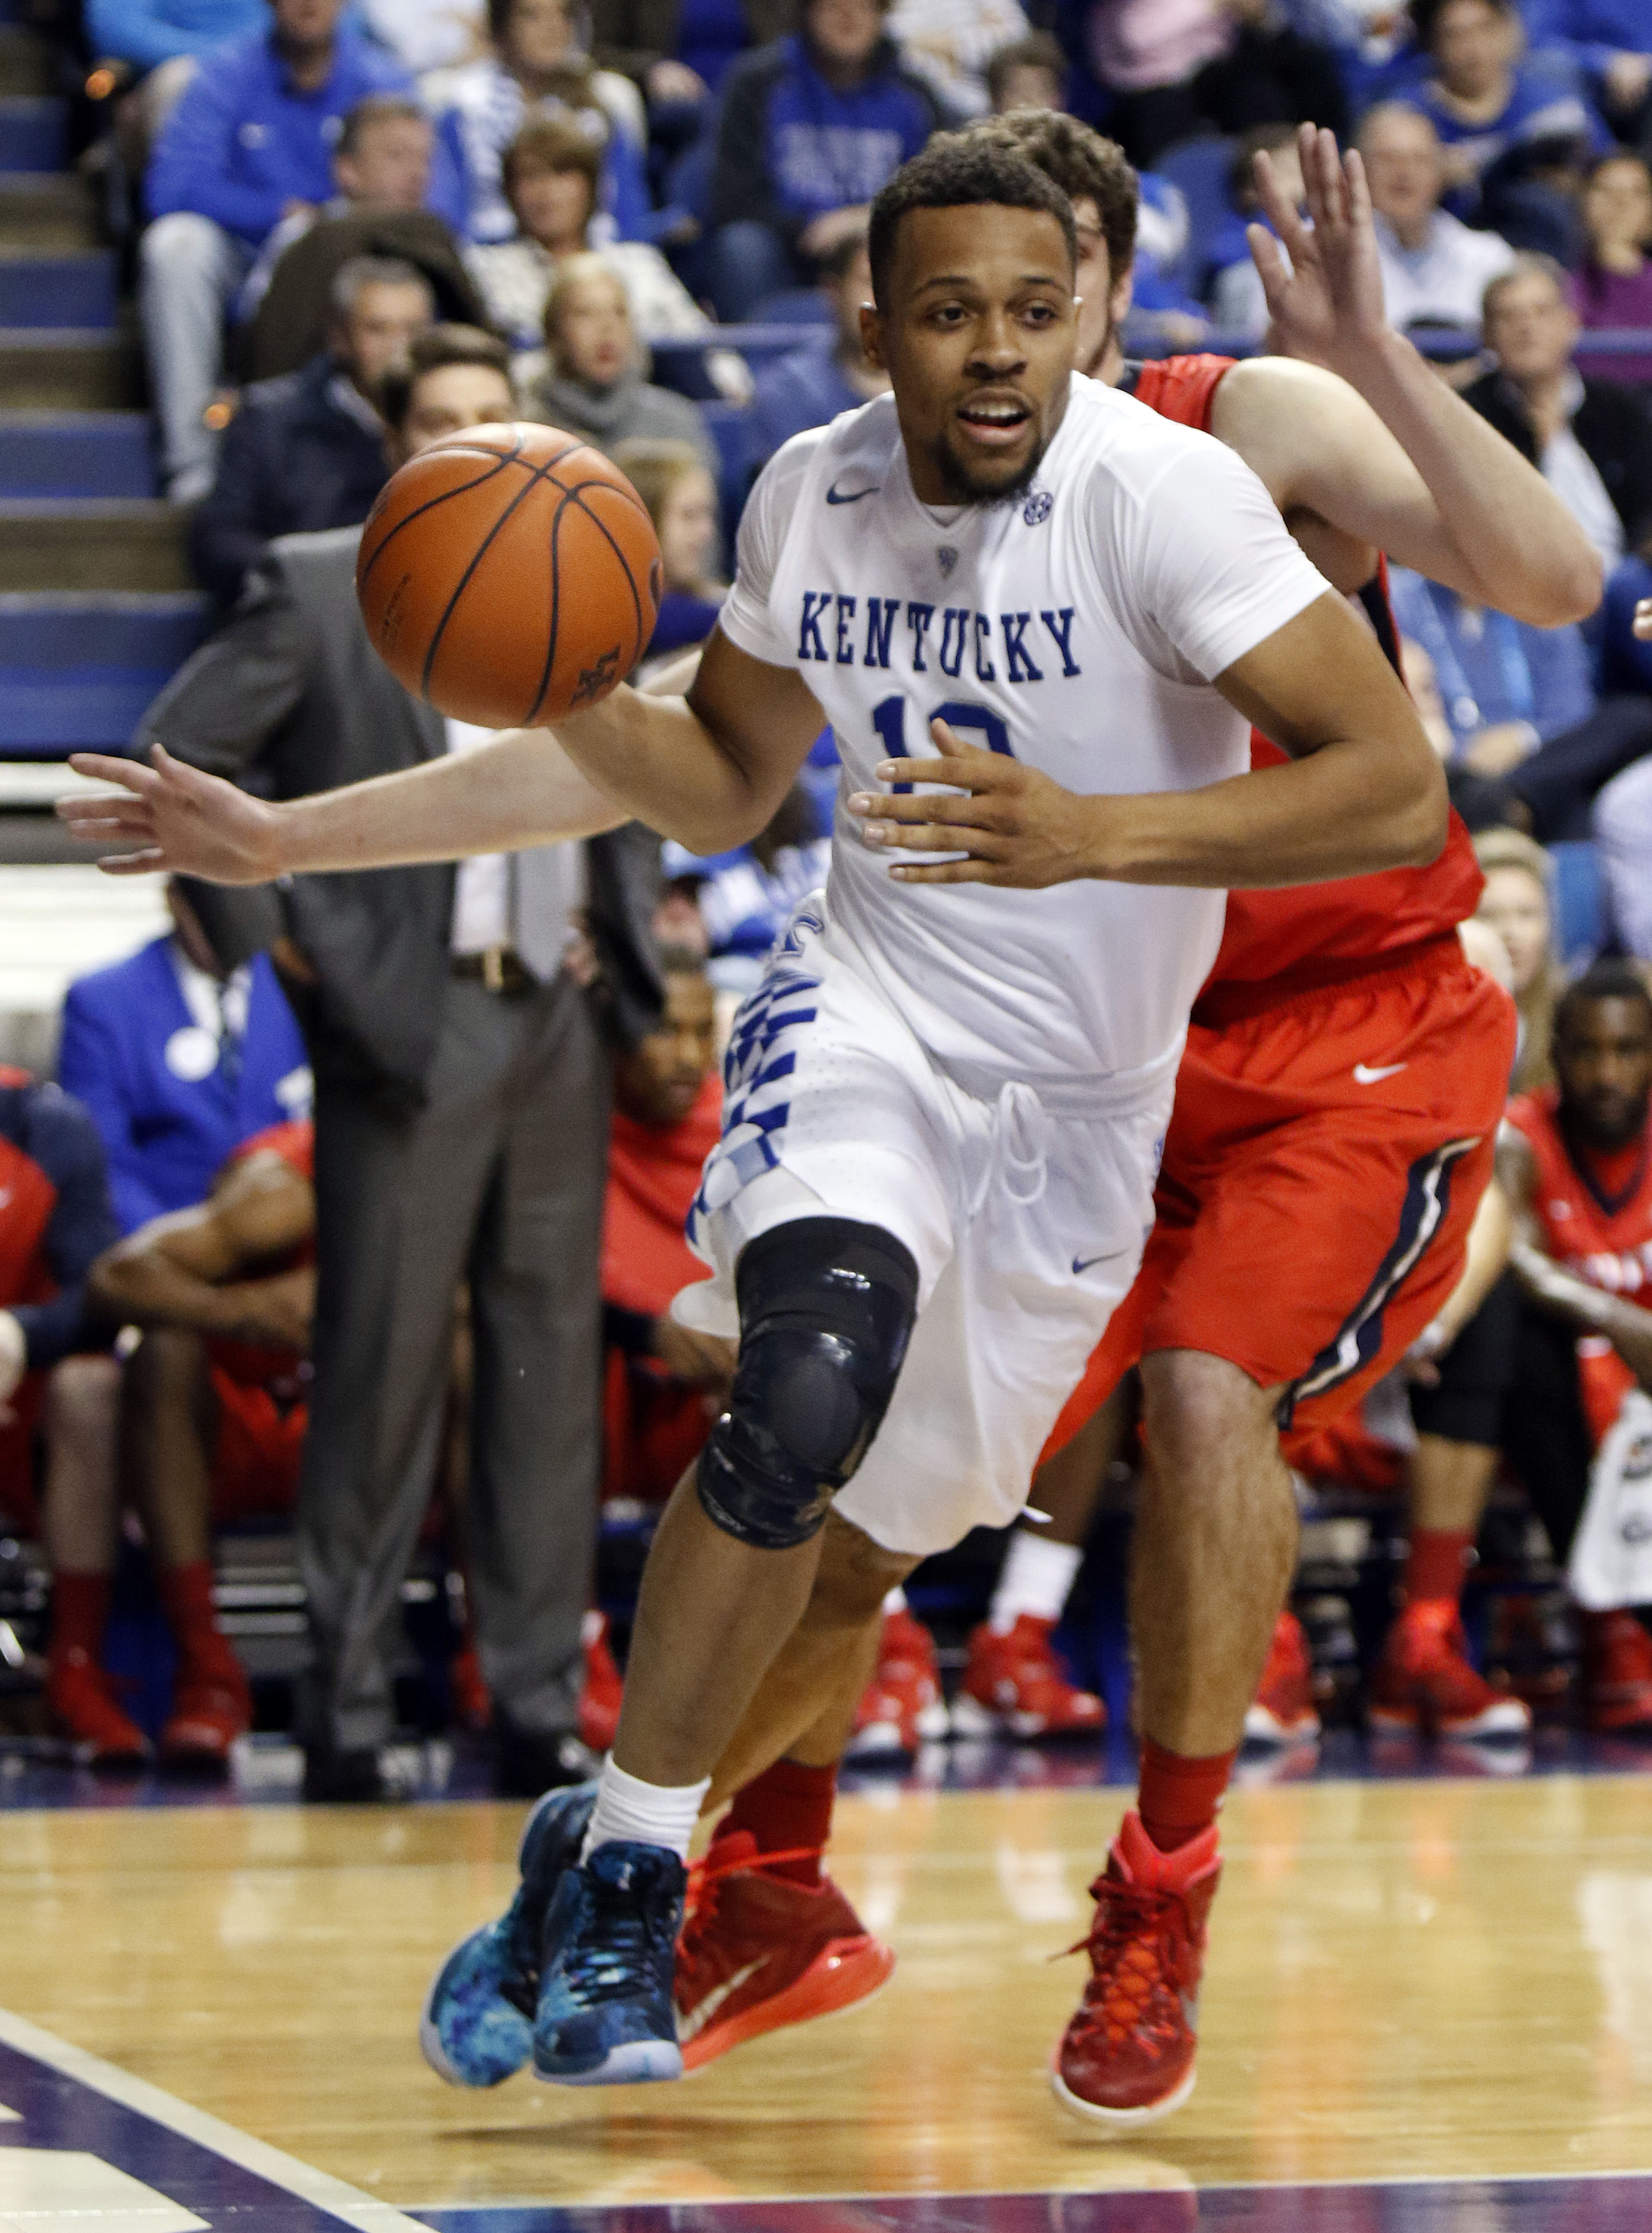 Kentucky's Isaiah Briscoe goes around the defense of NJIT's Emmanuel Tselentakis during the first half of an NCAA college basketball game Saturday, Nov. 14, 2015, in Lexington, Ky. (AP Photo/James Crisp)